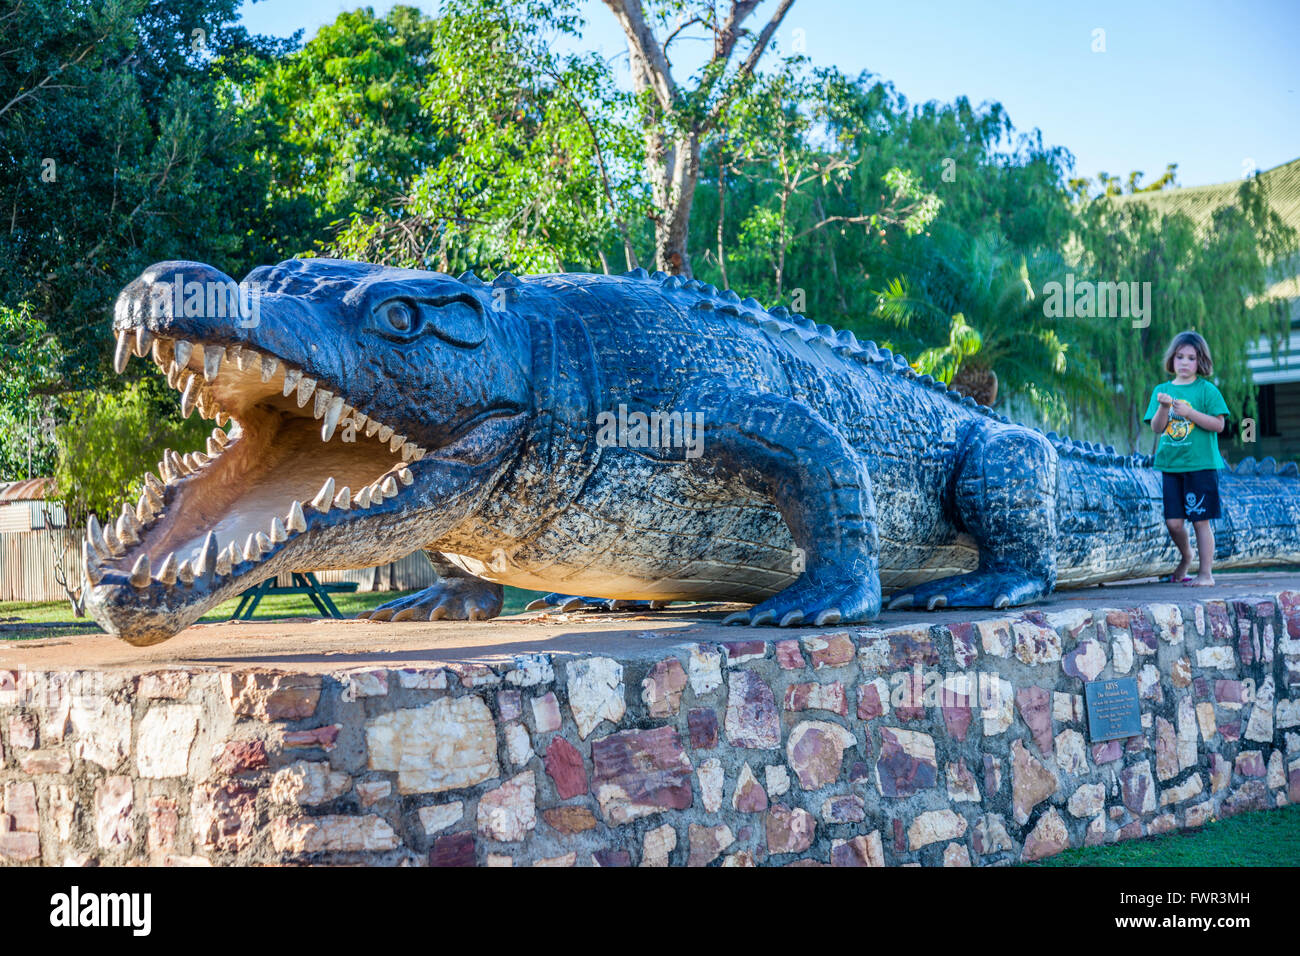 'Krys' The Savannah King, replica of a giant saltwater crocodile at Normanton, Gulf of Carpentaria, Queensland, - Stock Image